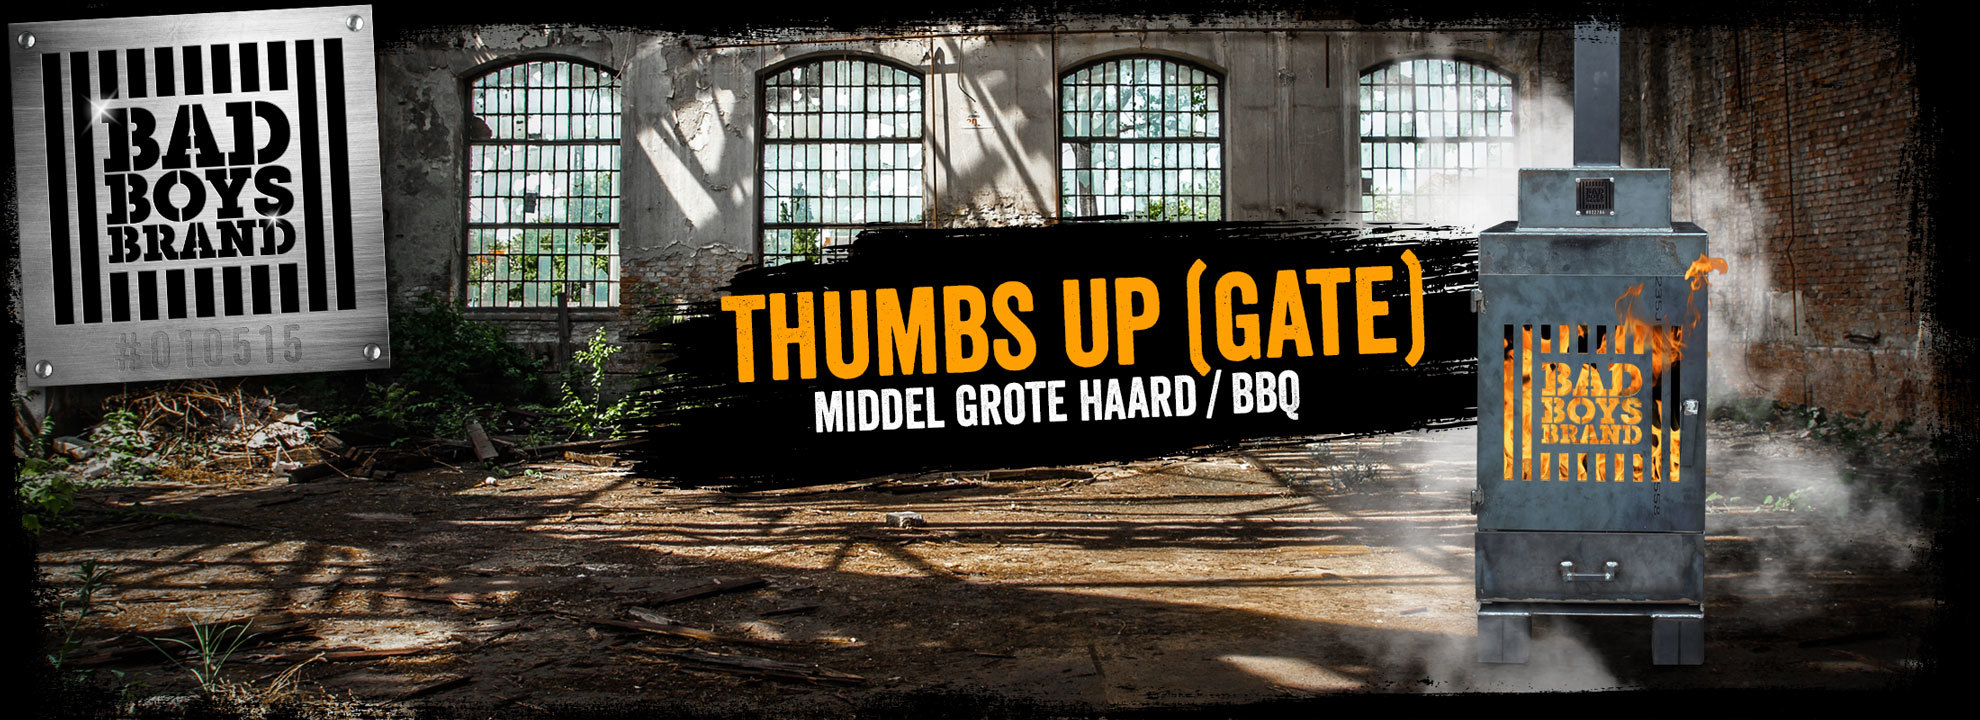 Thumbs Up (Gate)